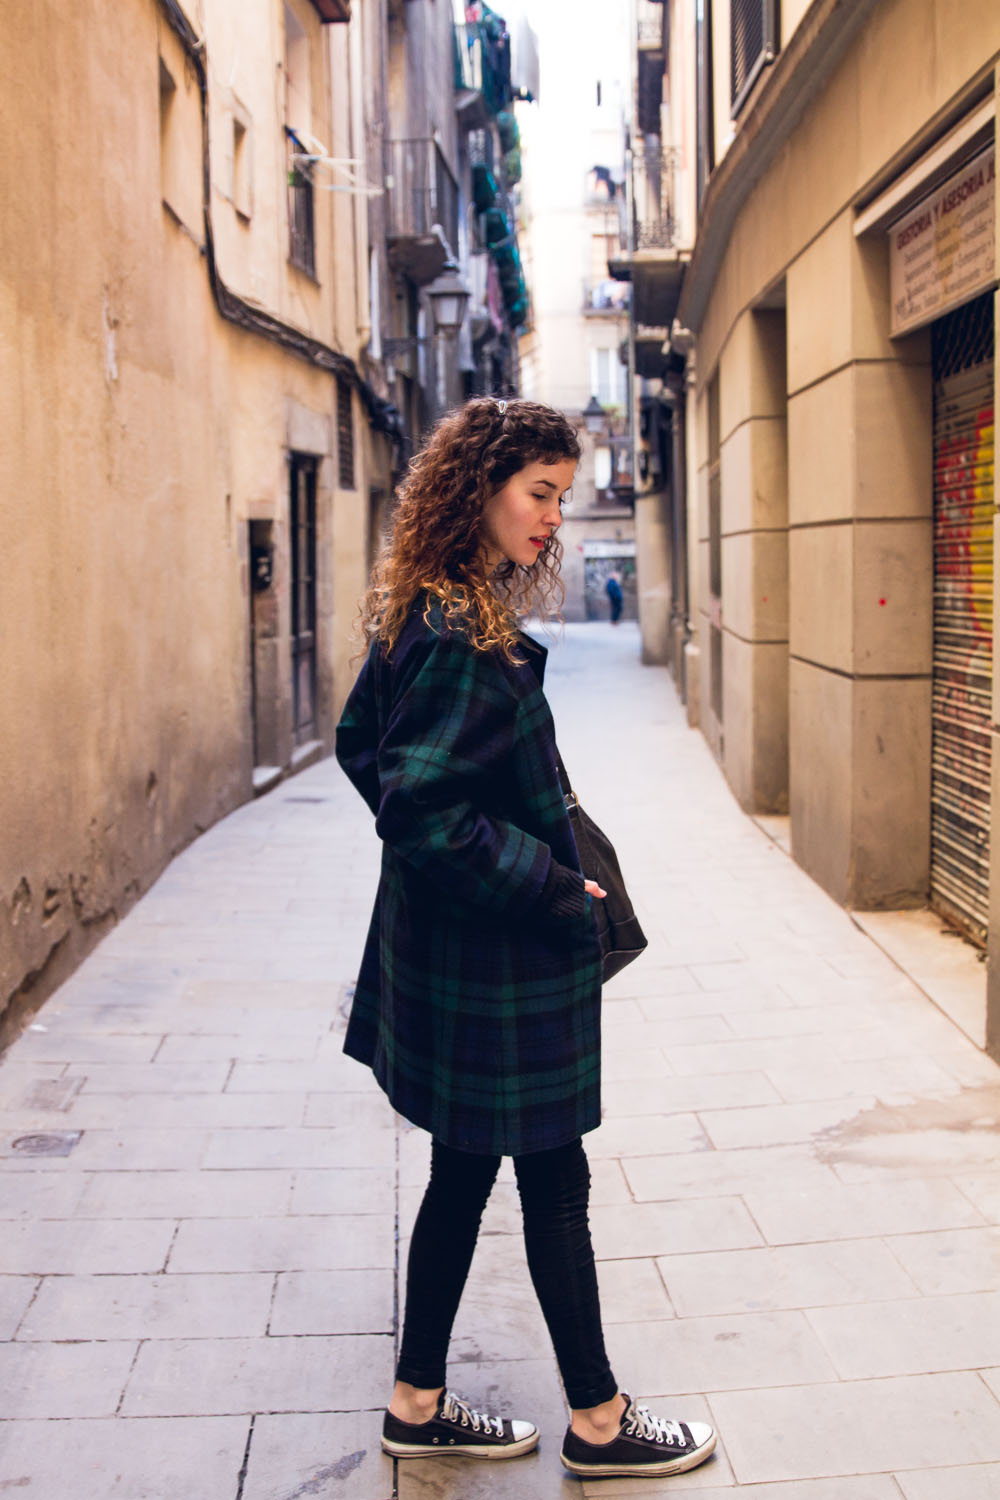 barcelona outfit 2 (3 of 8)